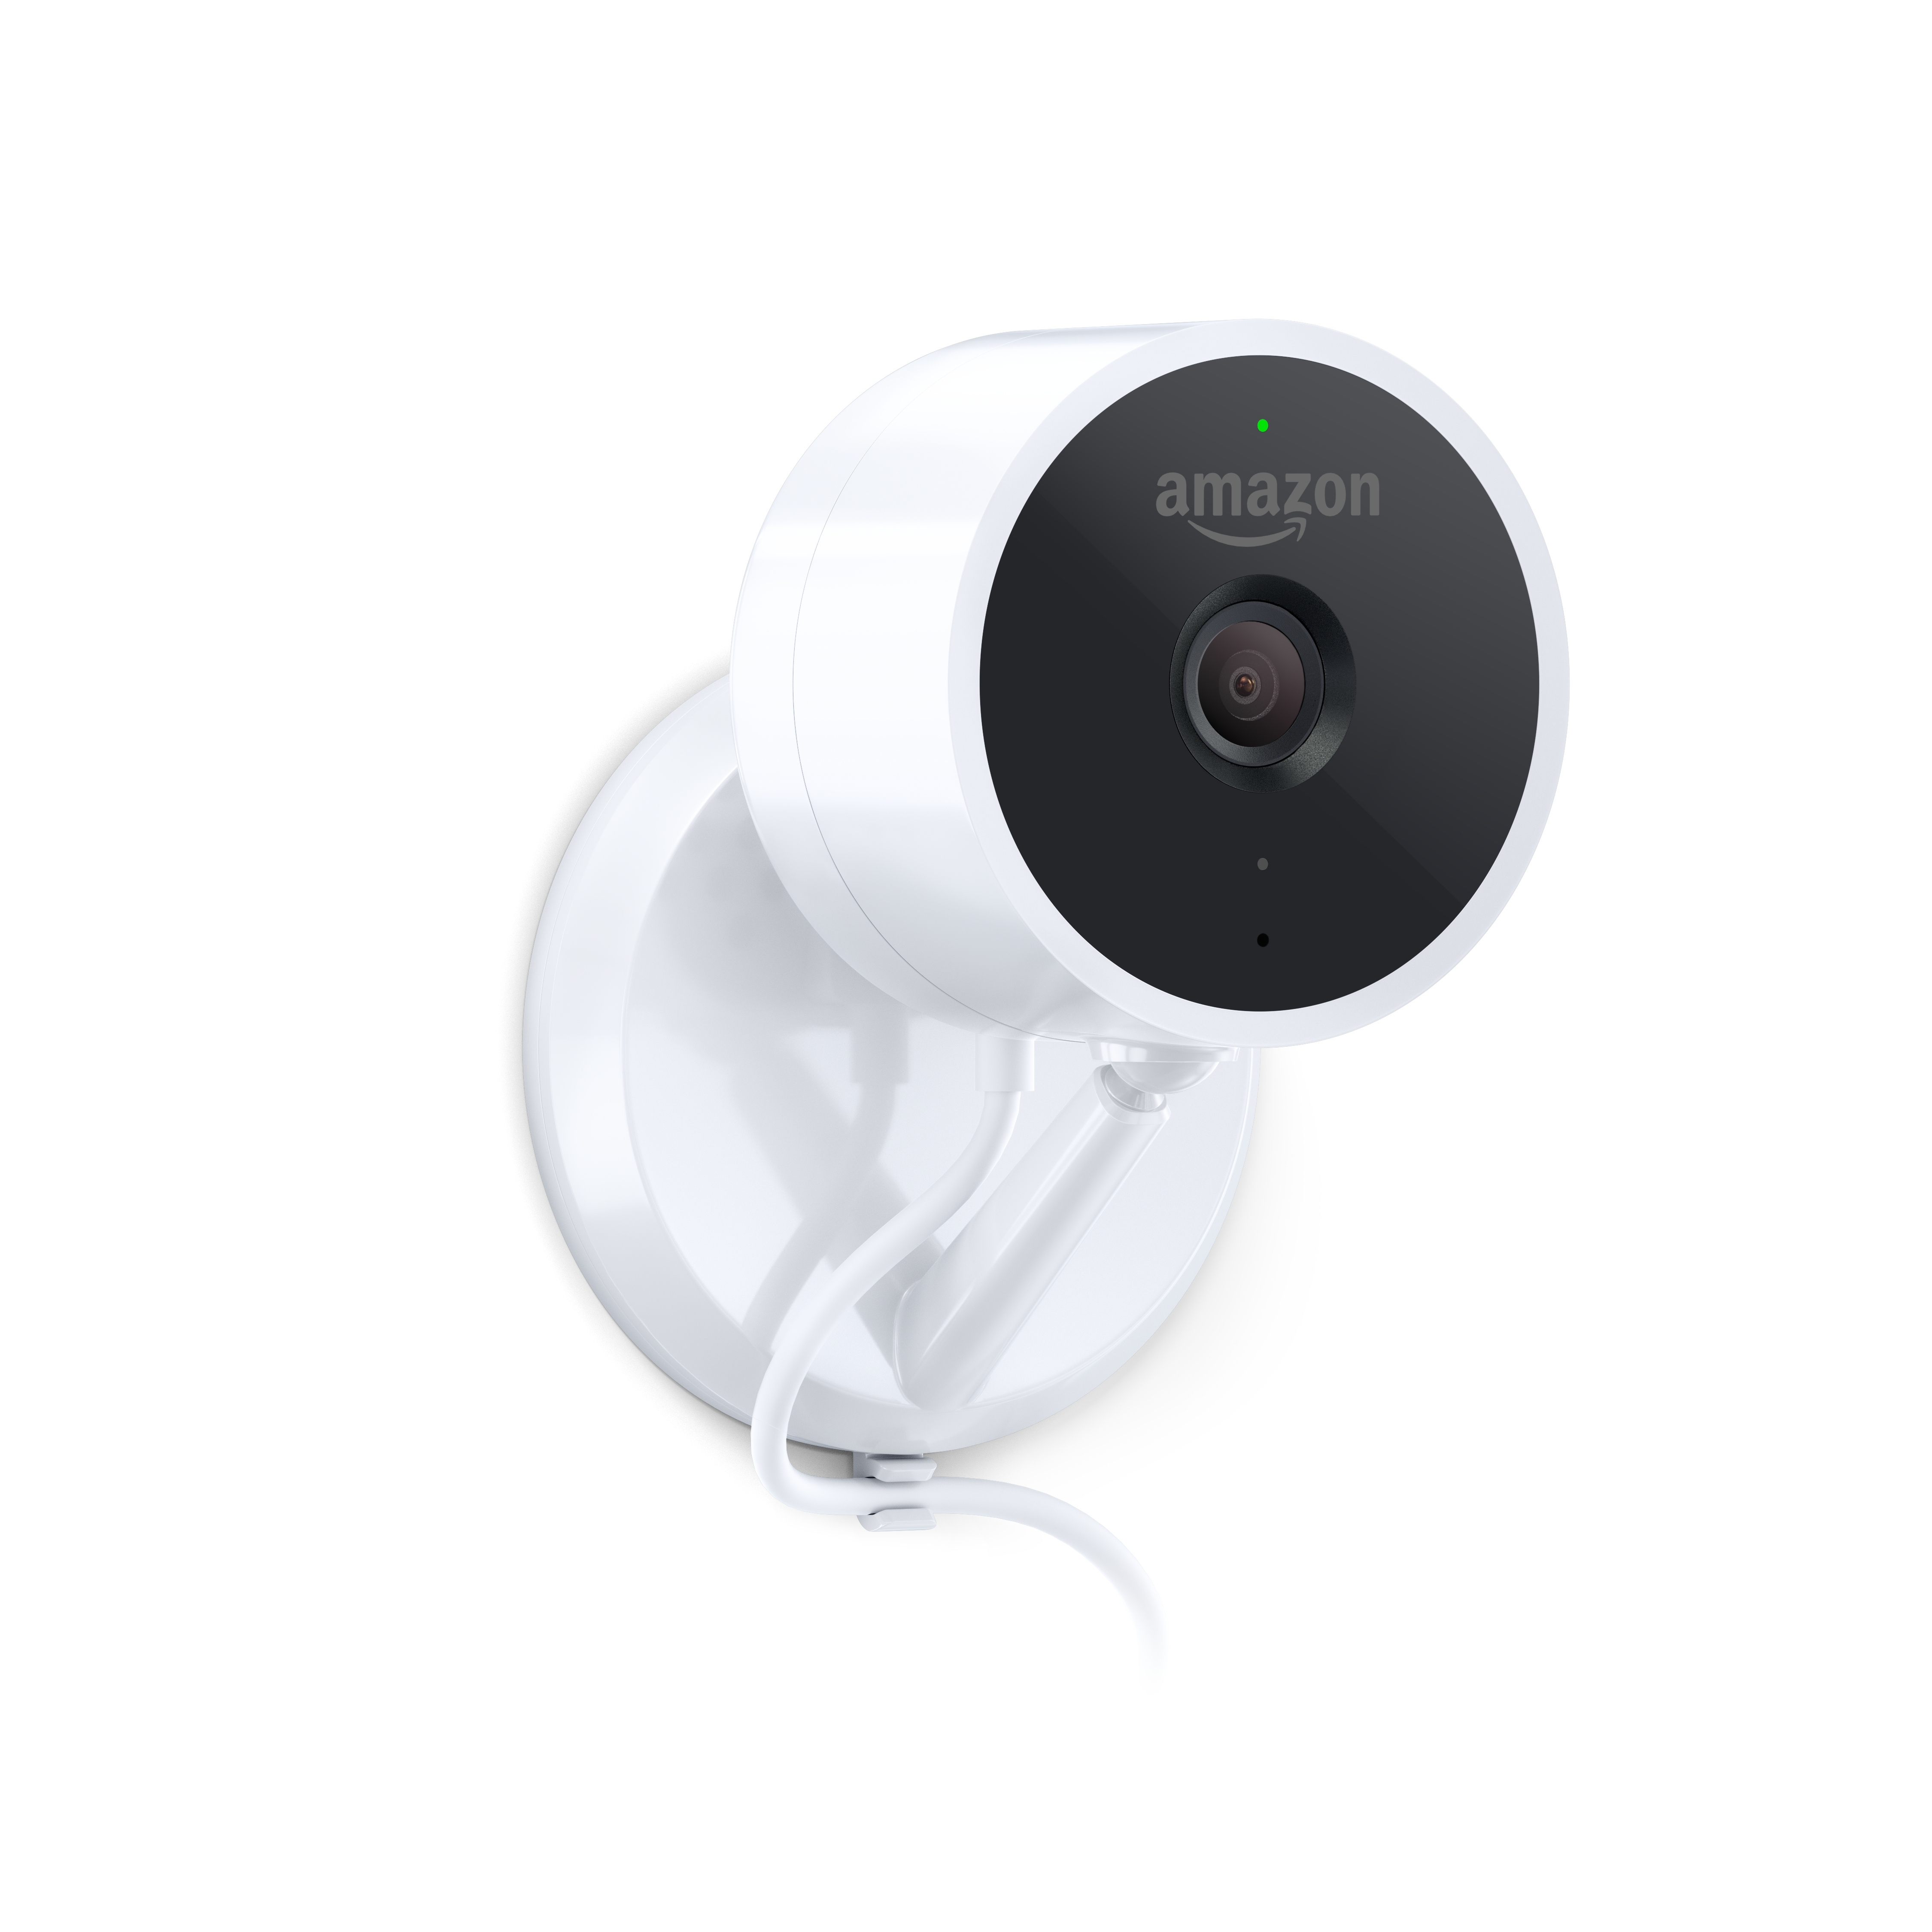 Introducing Amazon Cloud Cam—An Intelligent Security Camera